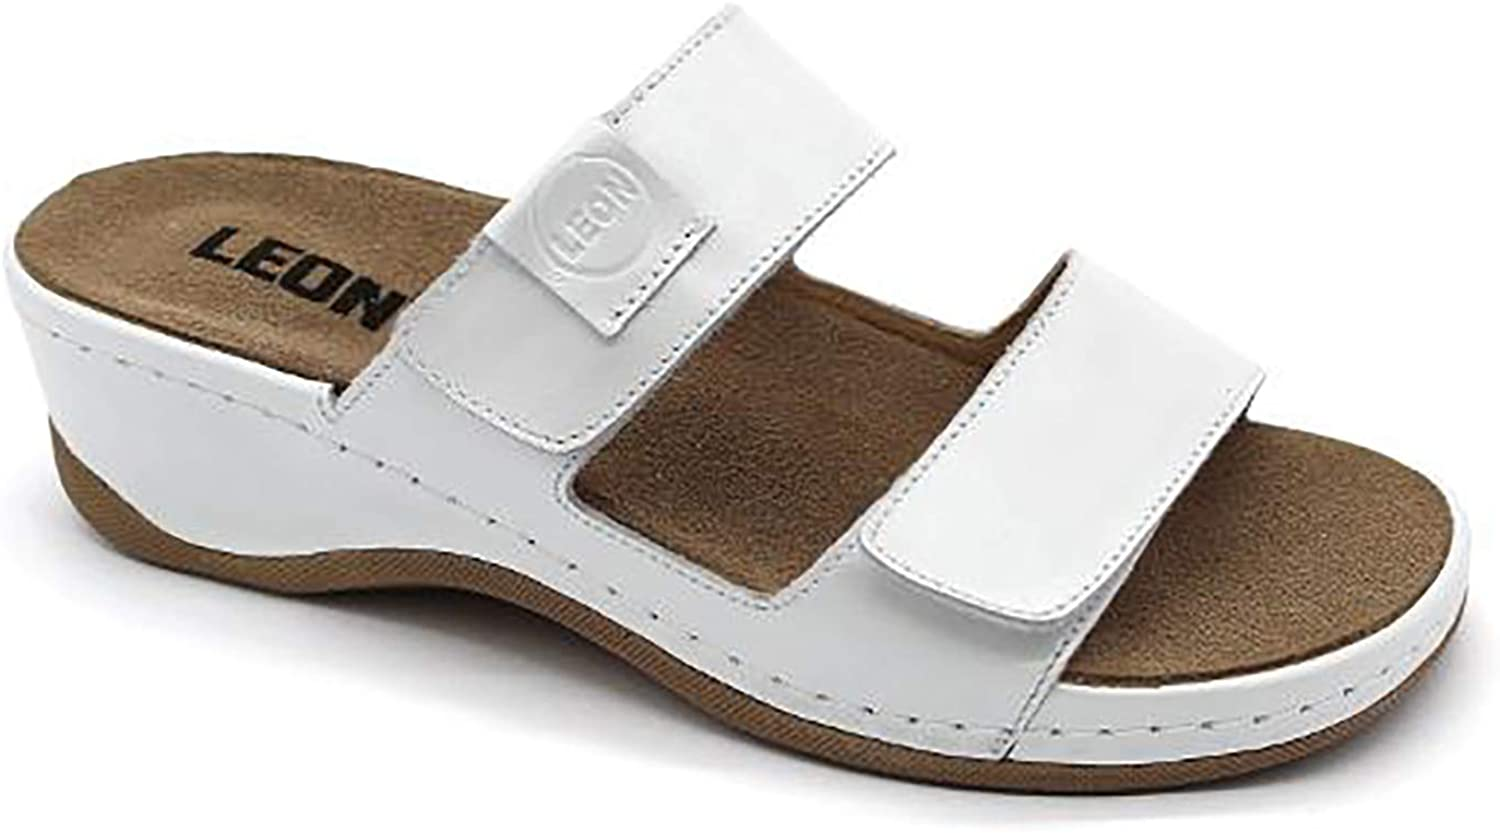 LEON 2020 Leather Slip-on Womens Ladies Sandals Mule Clogs Slippers Shoes